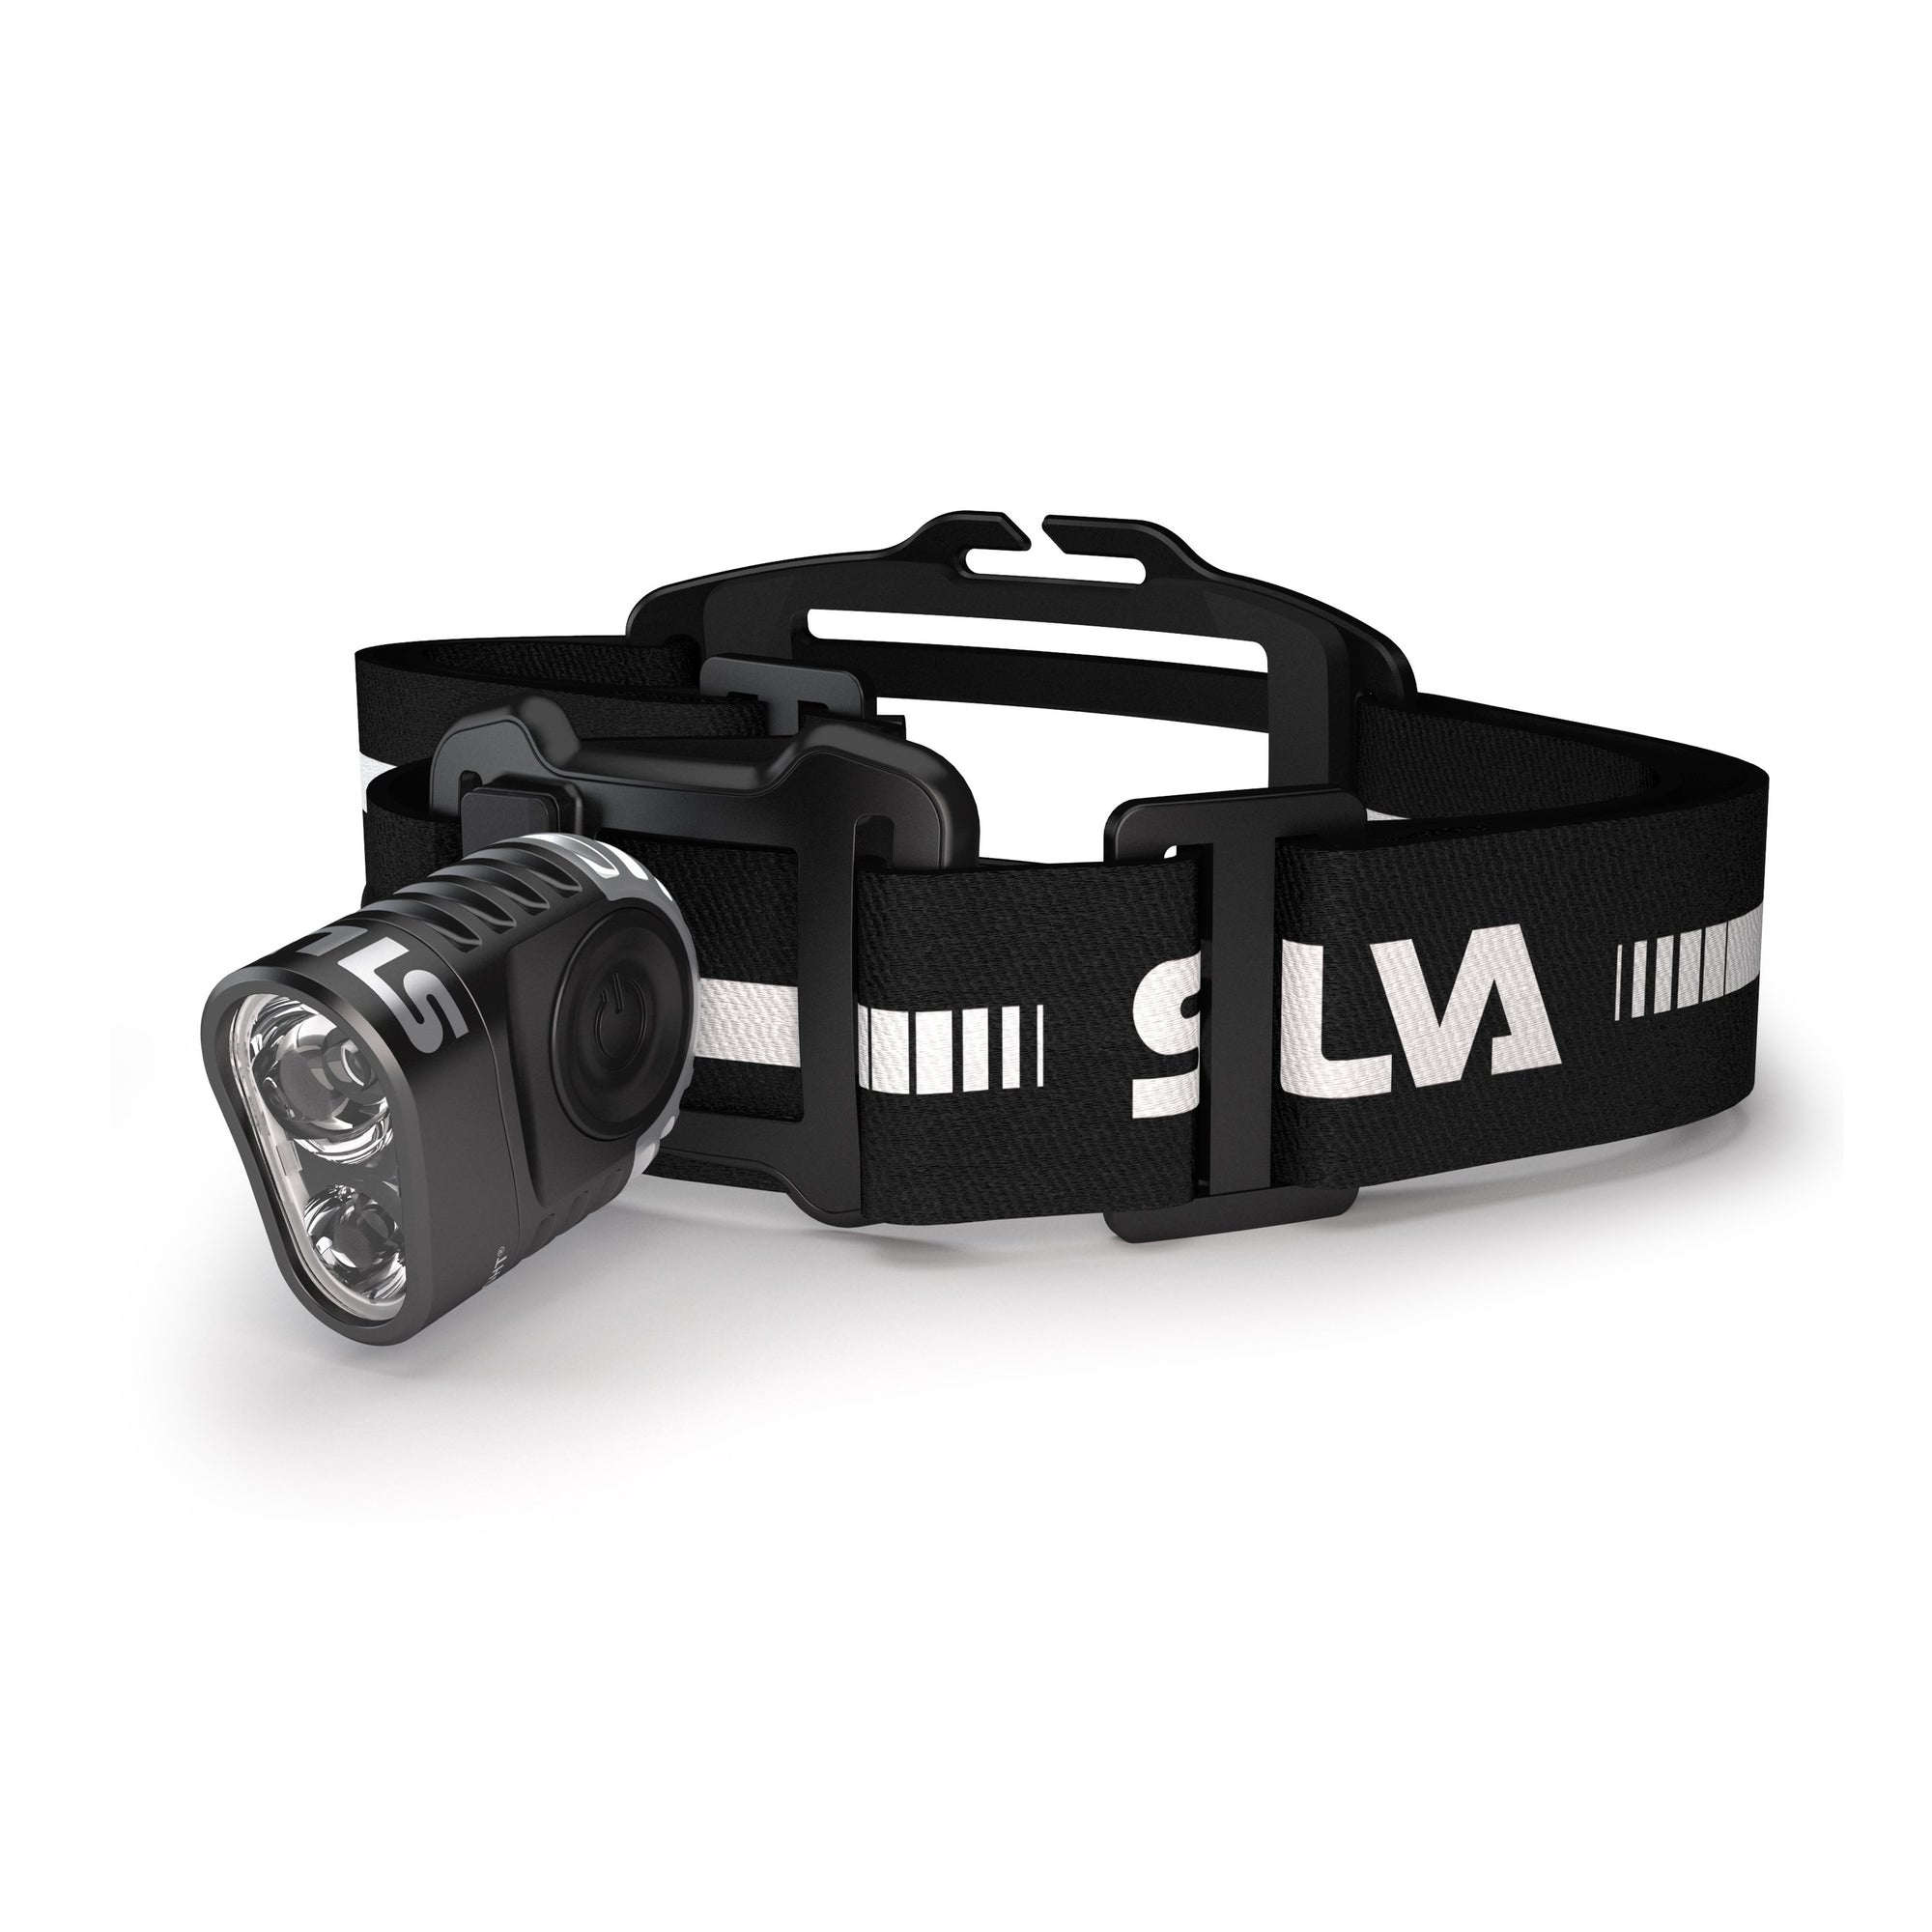 Silva Trail Speed 3XT headlamp, front view in black colour